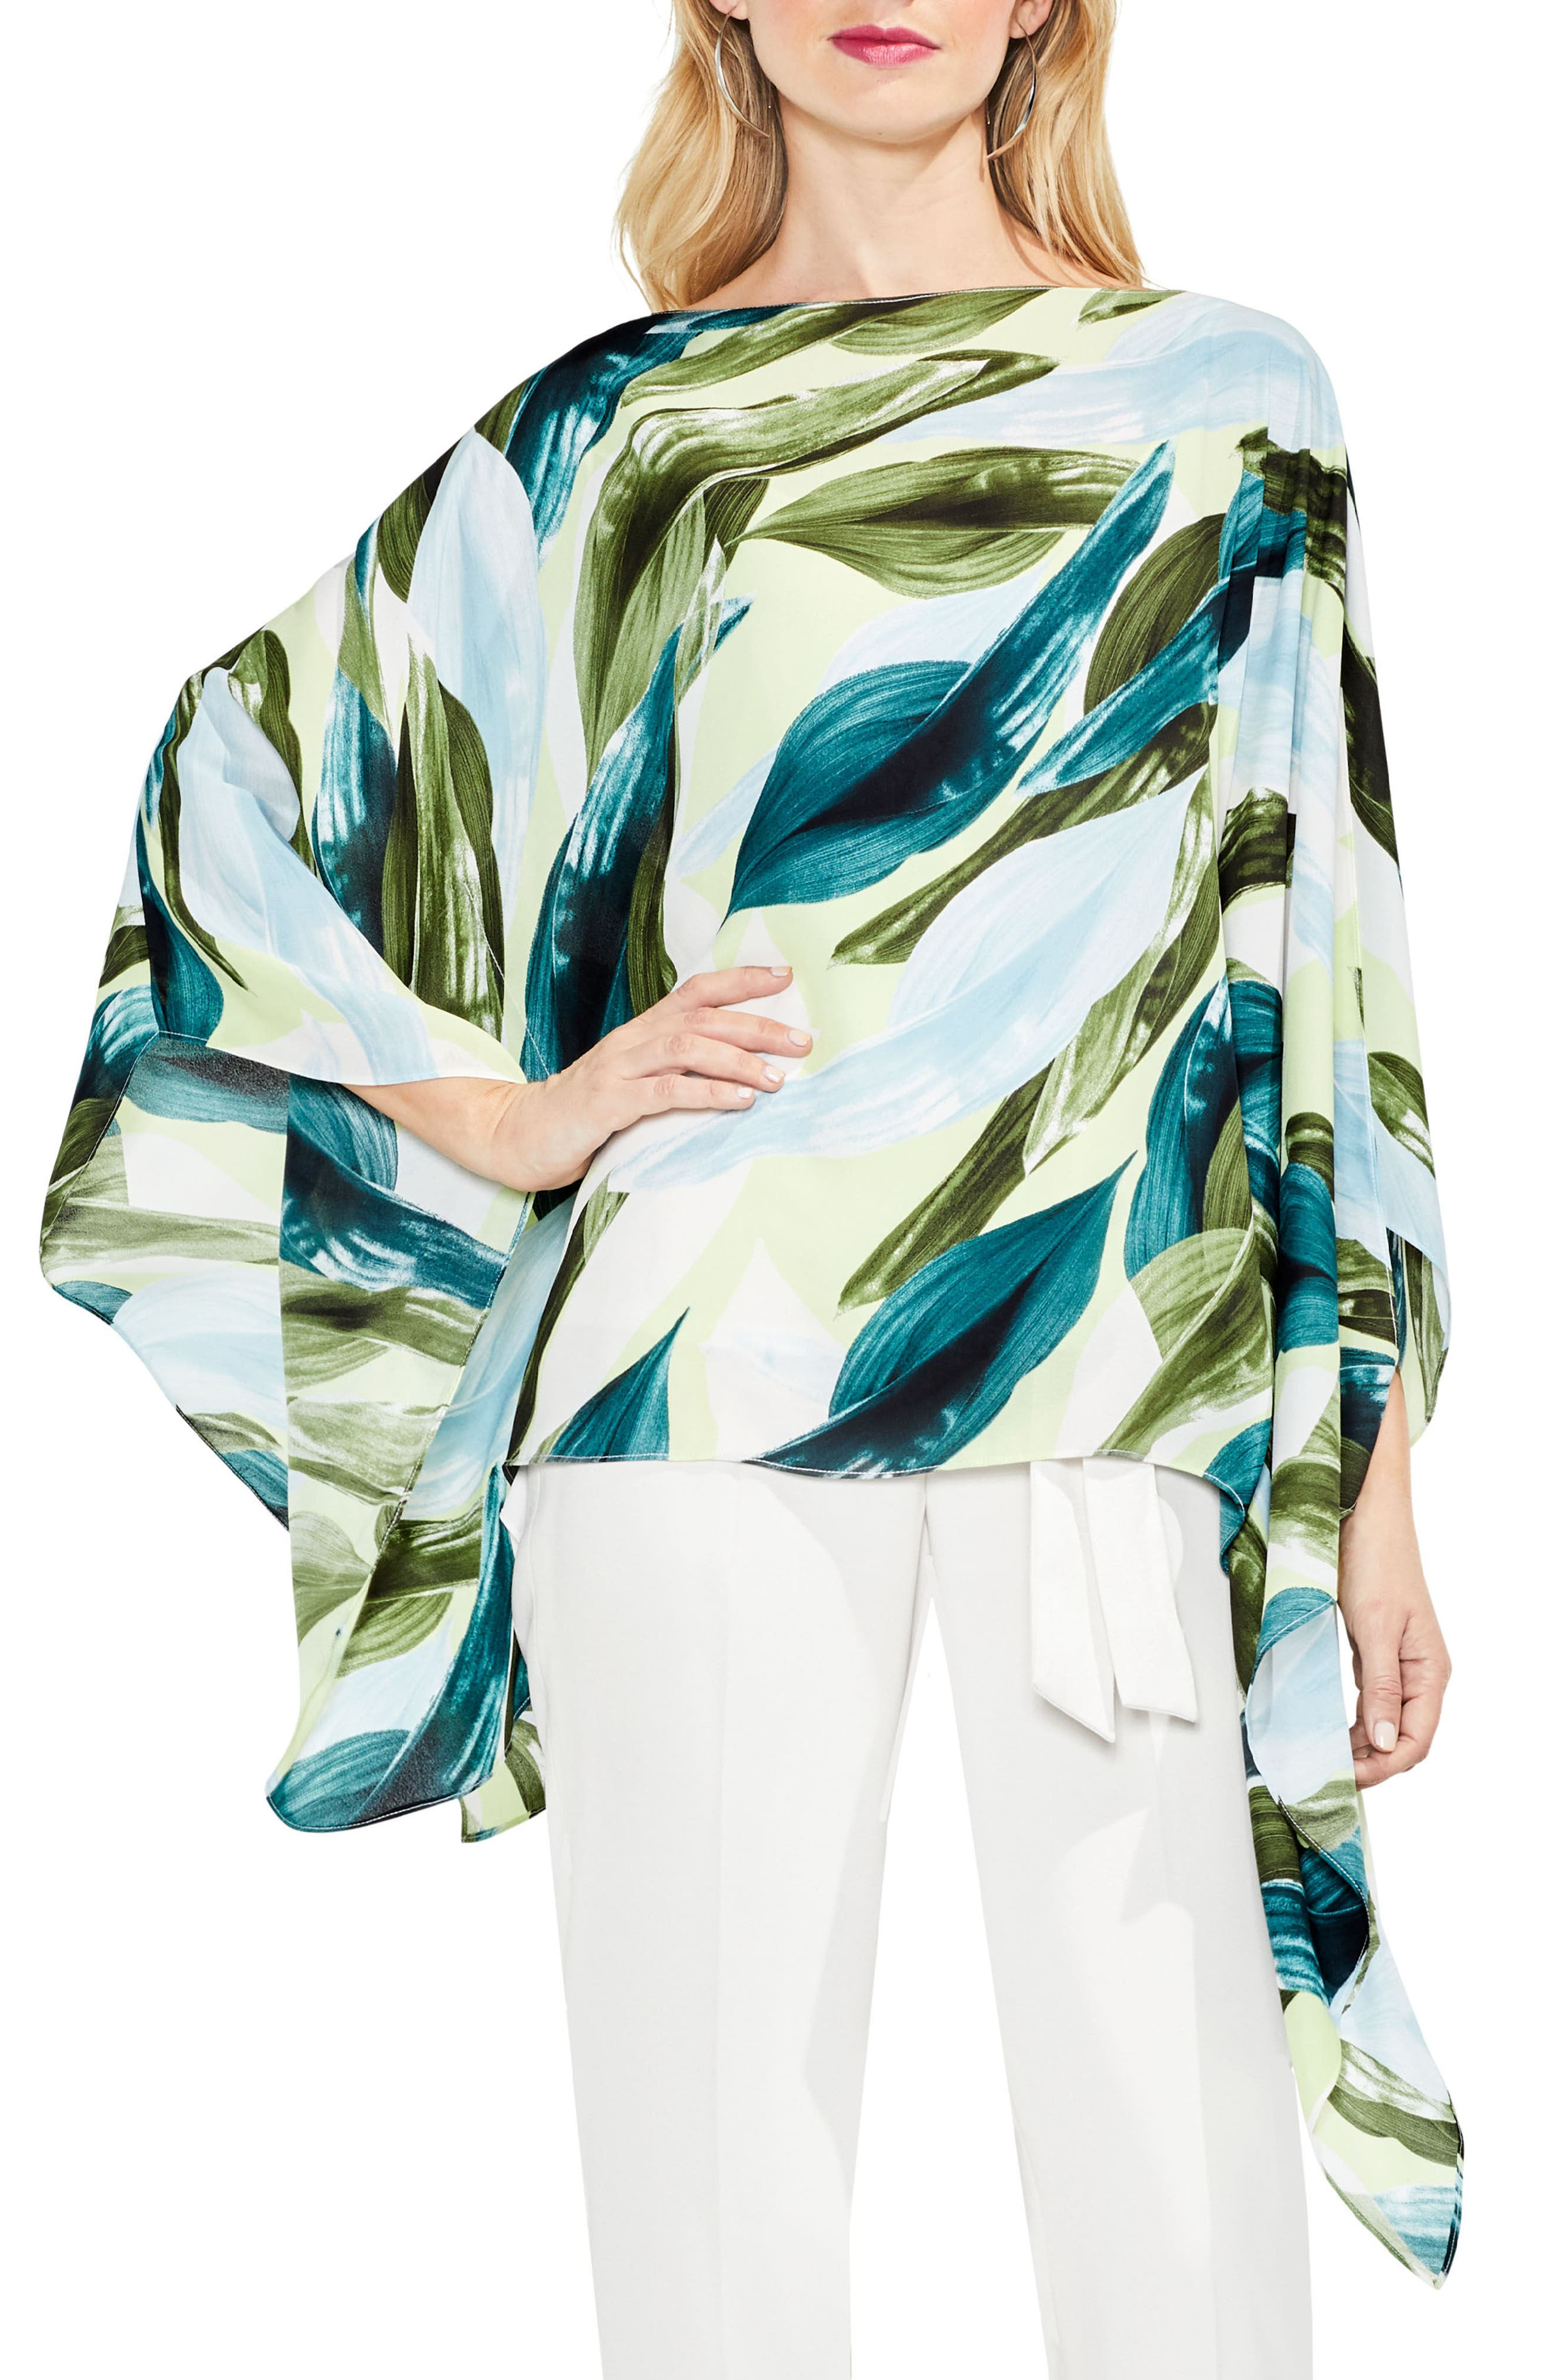 Breezy Leaves Poncho,                         Main,                         color, 108